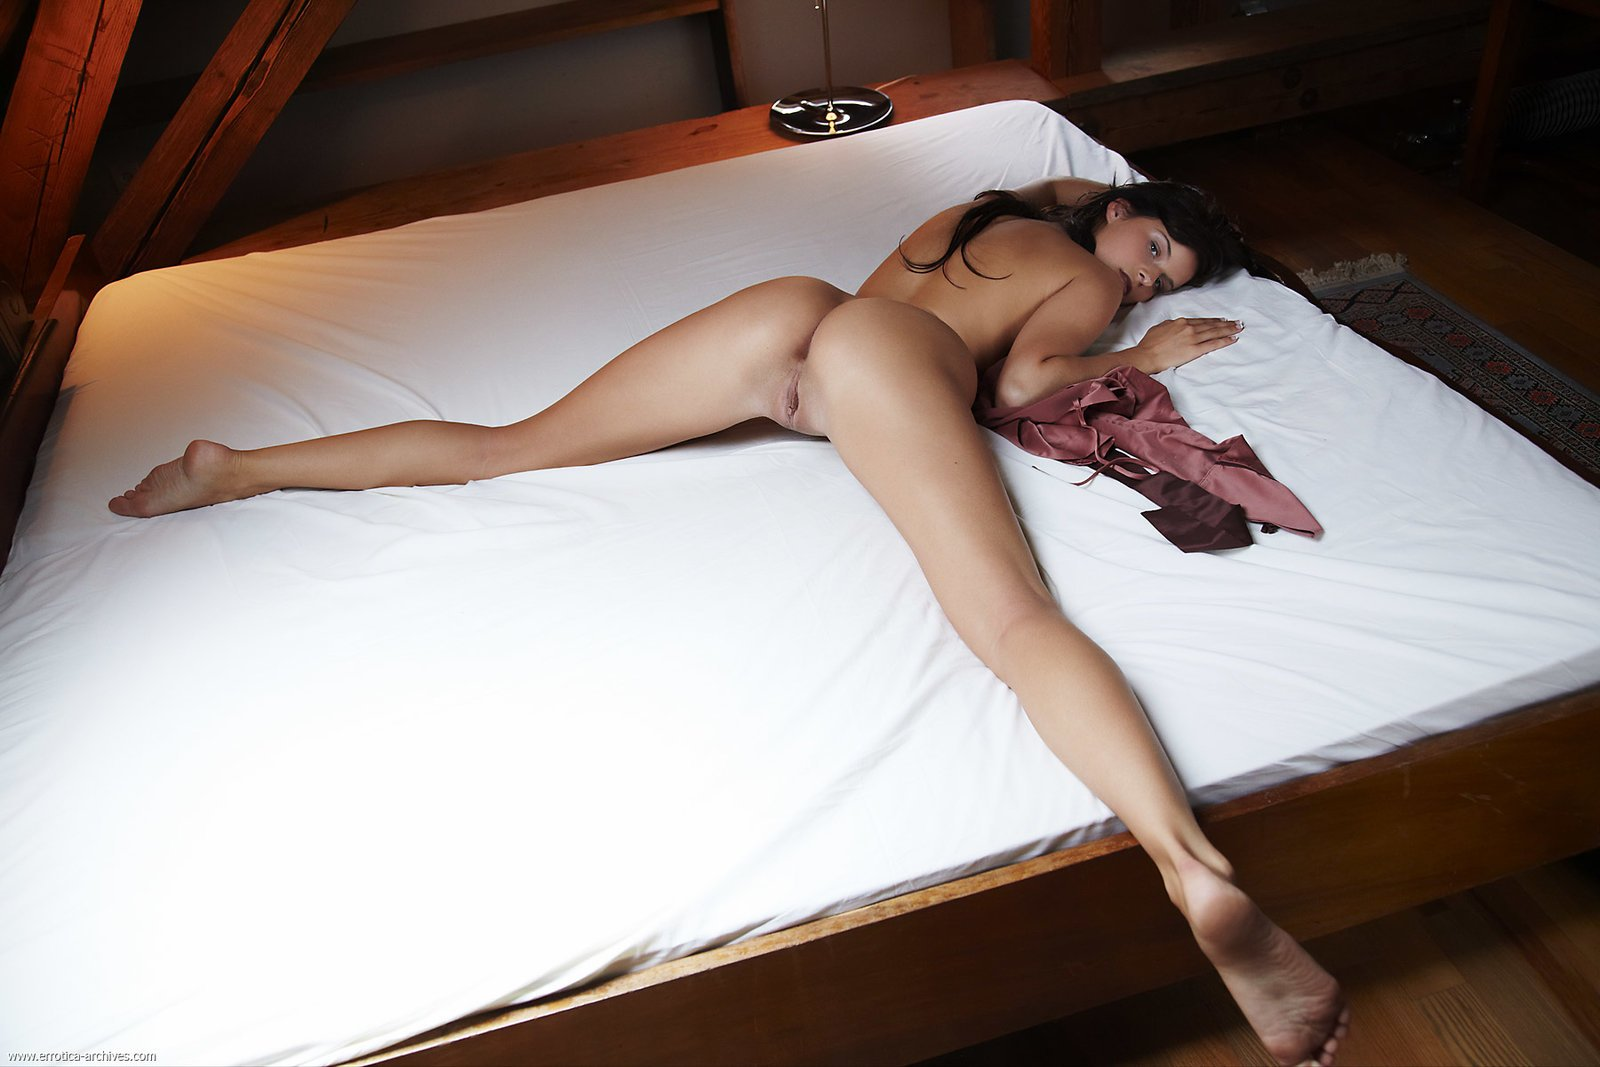 girl-relax-on-bed-solo-porno